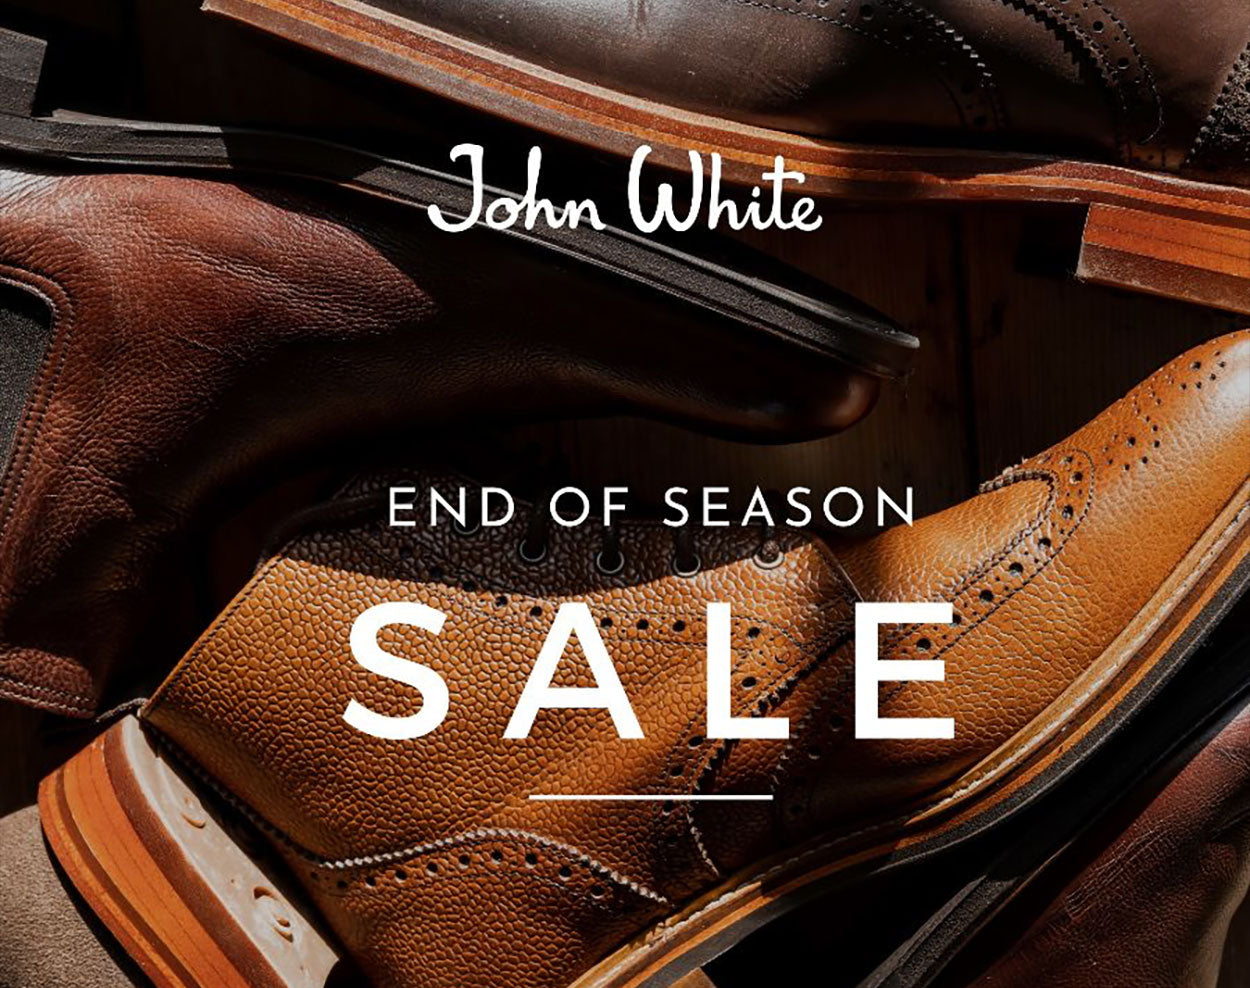 John White End of Season Sale